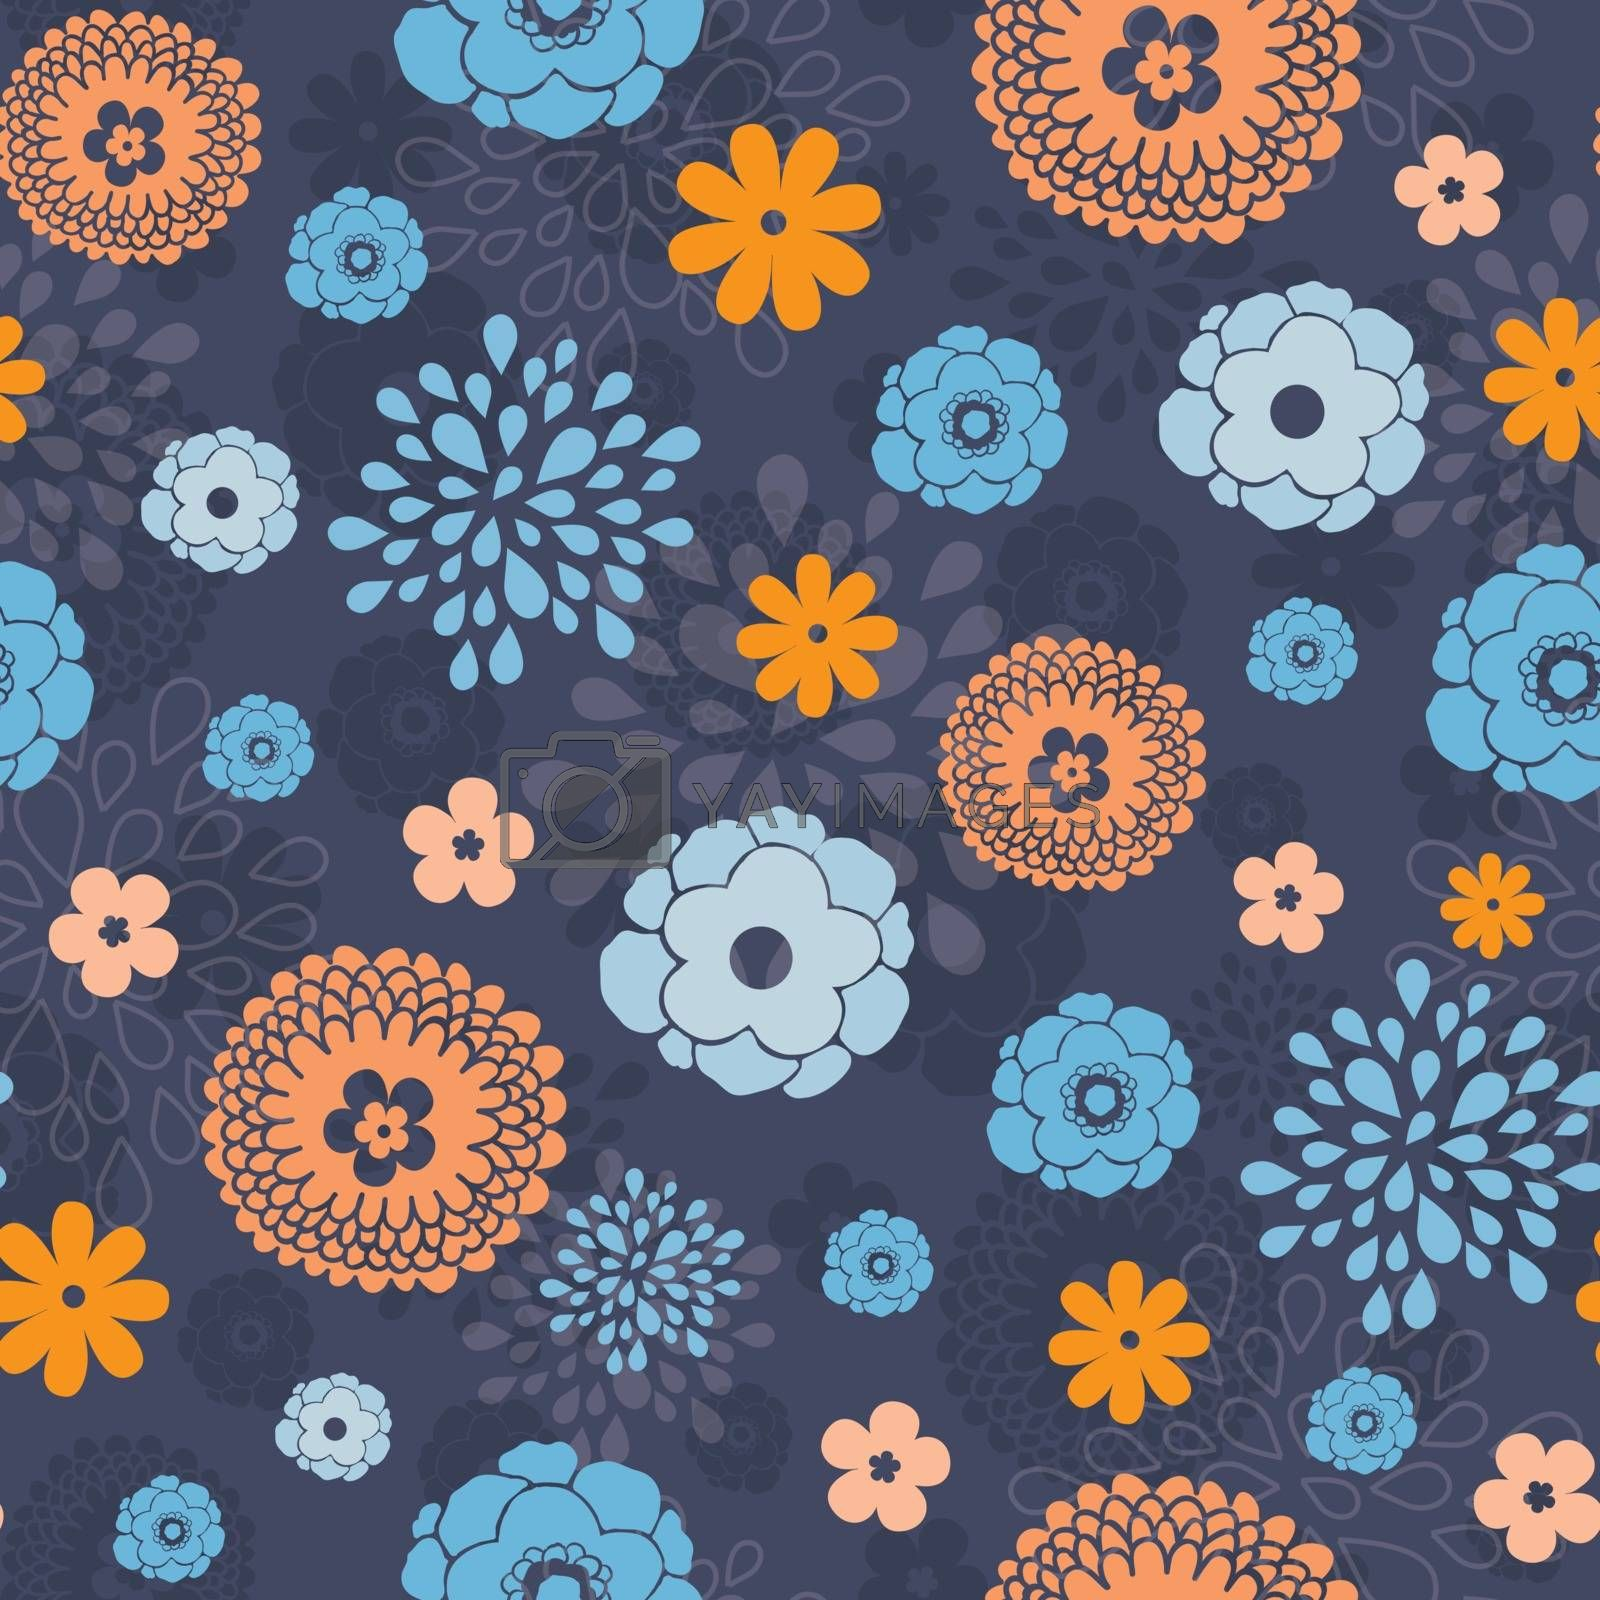 Vector golden and blue night flowers seamless pattern background graphic design